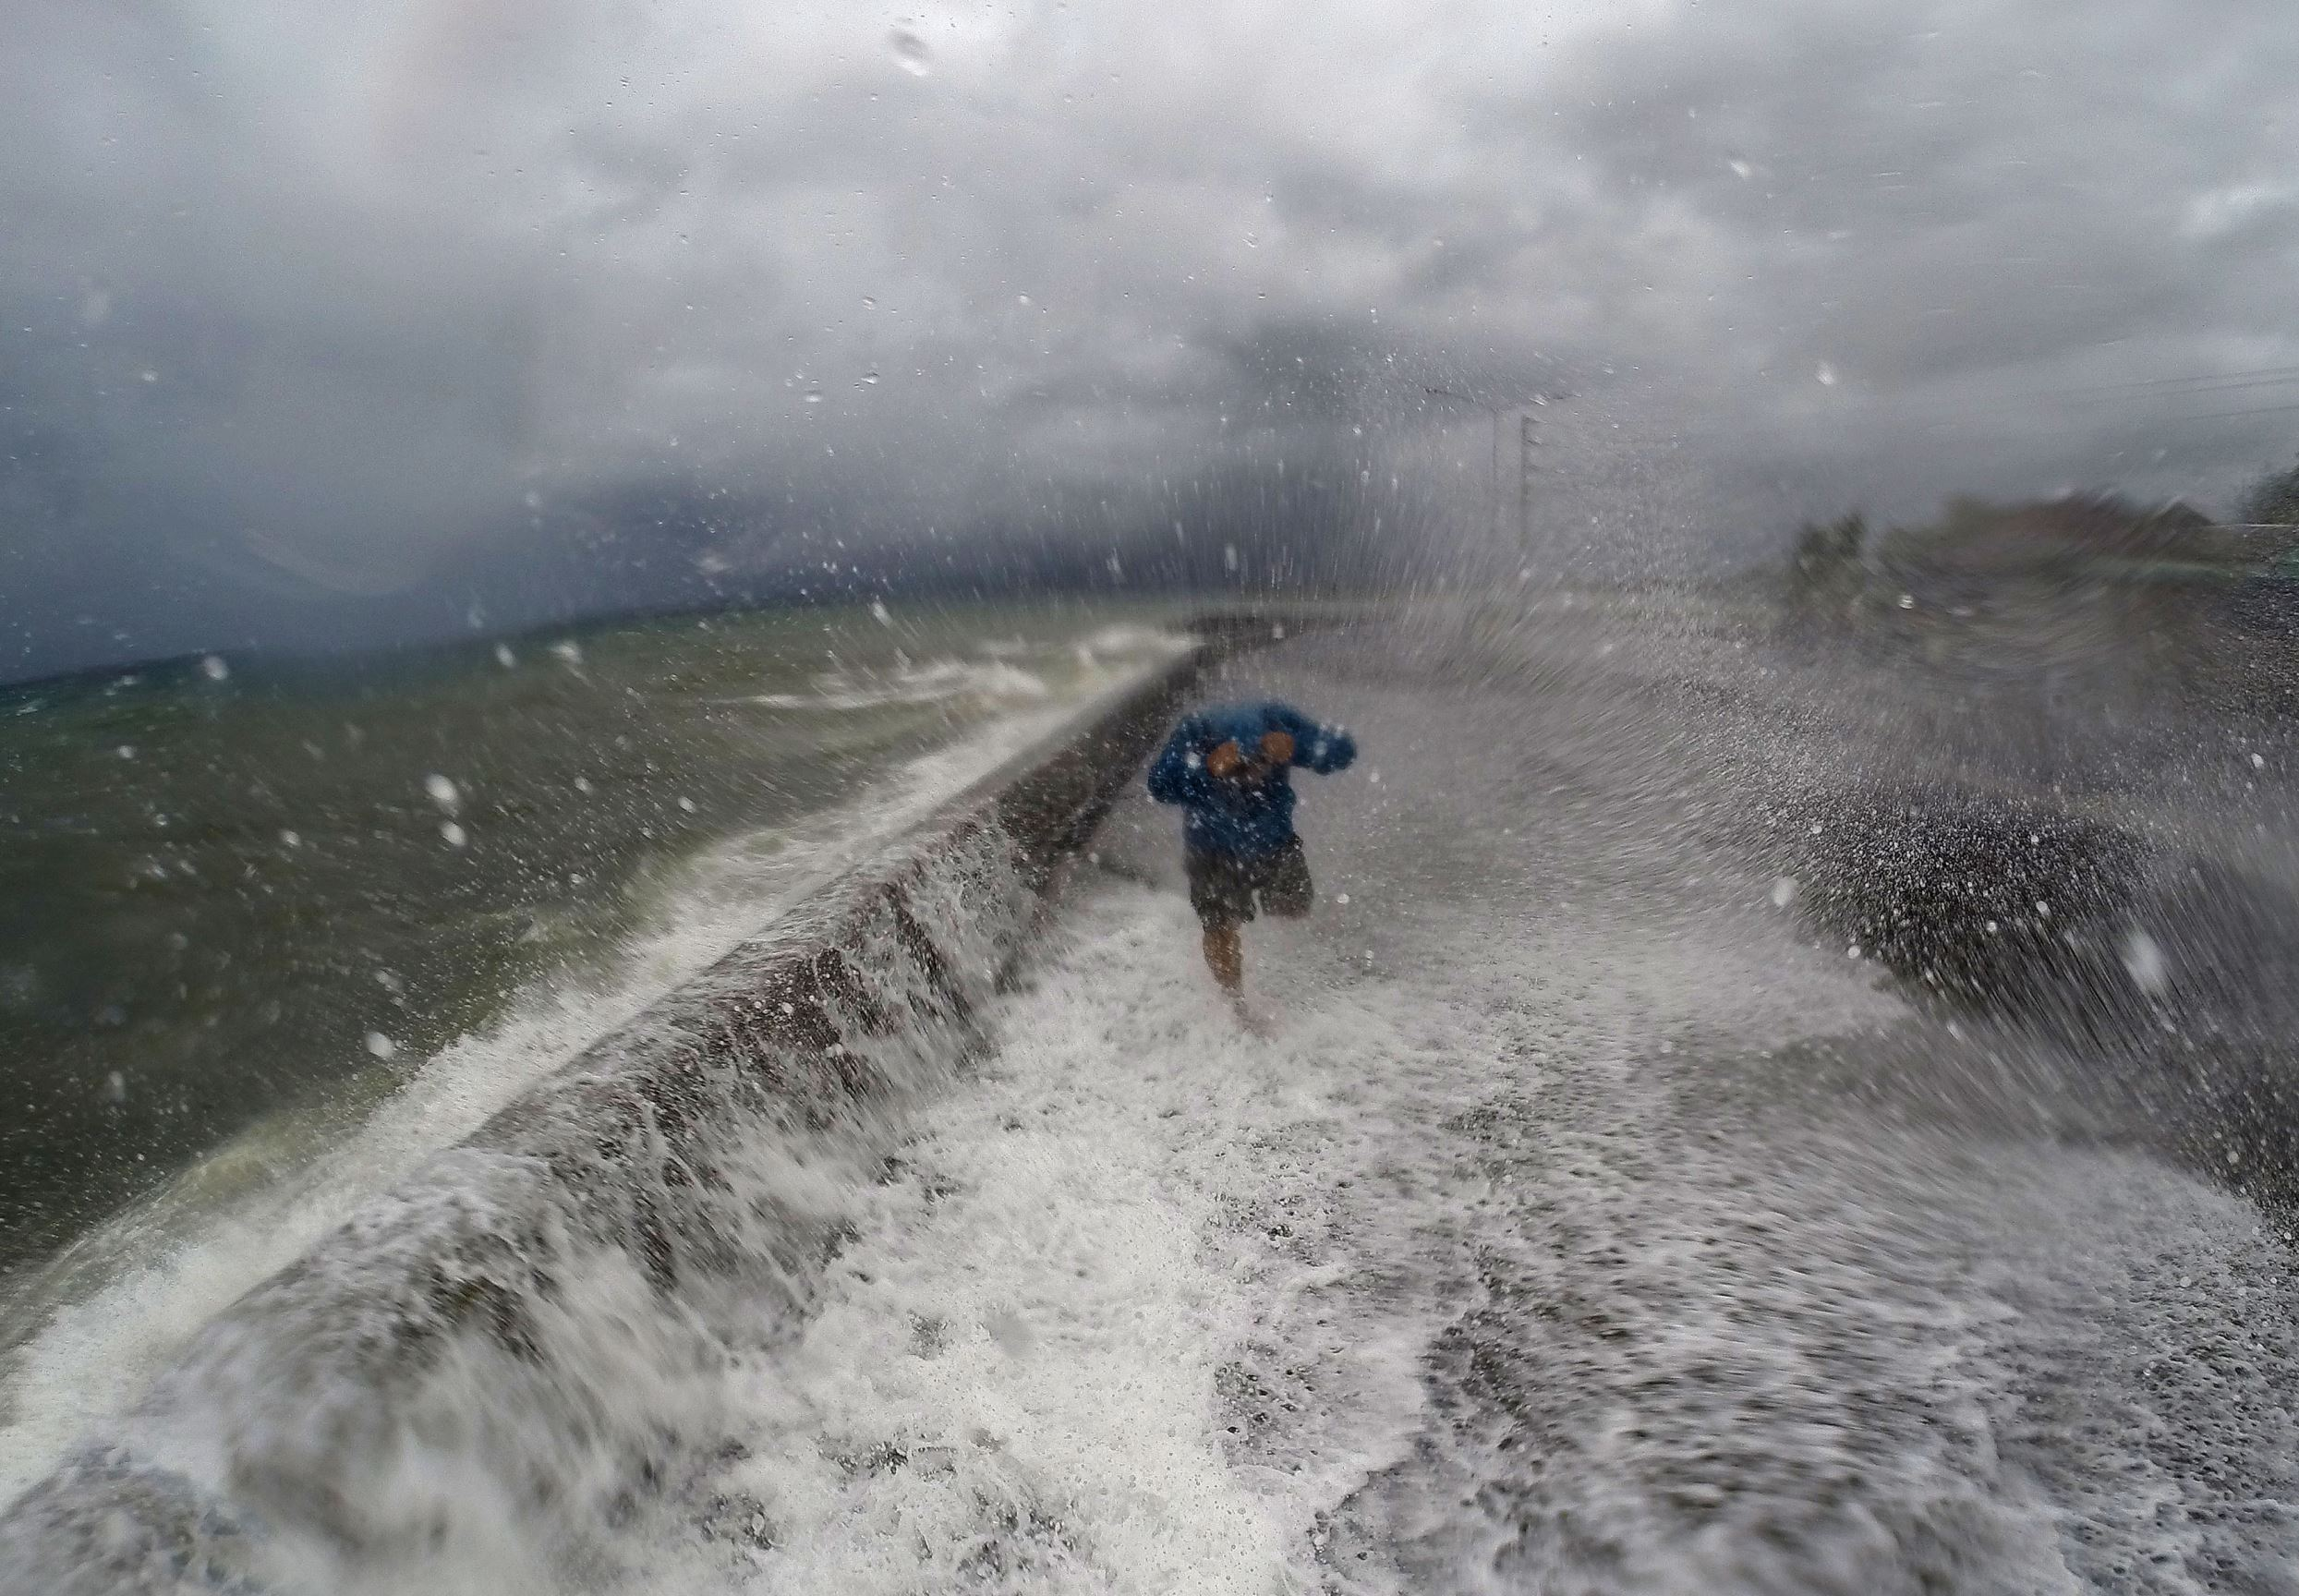 A resident walks past big waves spilling over a wall onto a coastal road in the city of Legaspi in Albay province, south of Manila on December 14, 2015, as typhoon Melor approaches the city. More than 700,000 people fled the central Philippines amid threats of giant waves, floods and landslides as powerful Typhoon Melor approached the archipelago nation, officials said December 14.